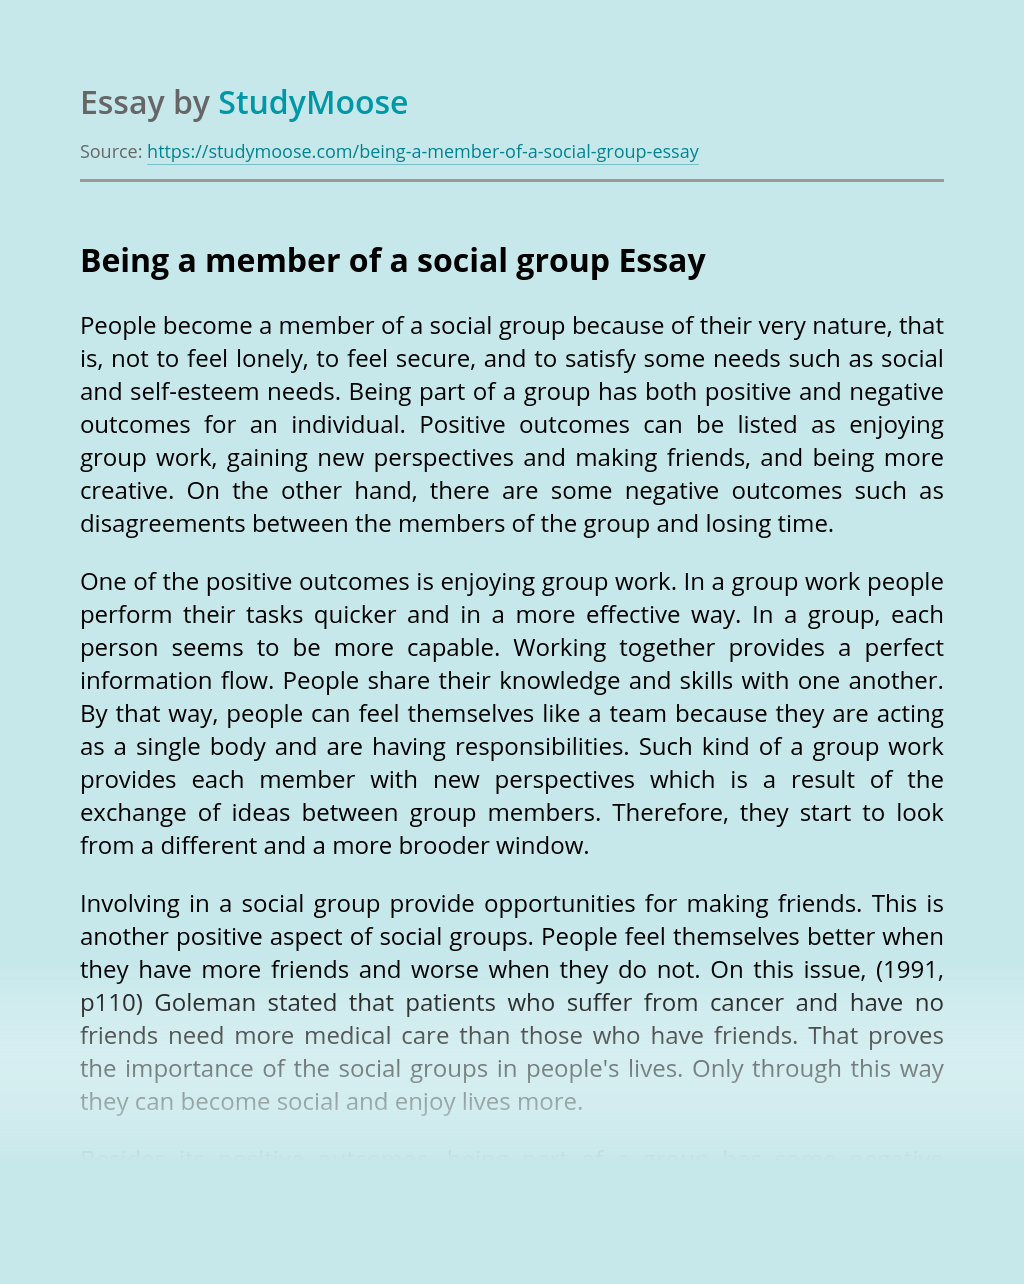 Being a member of a social group